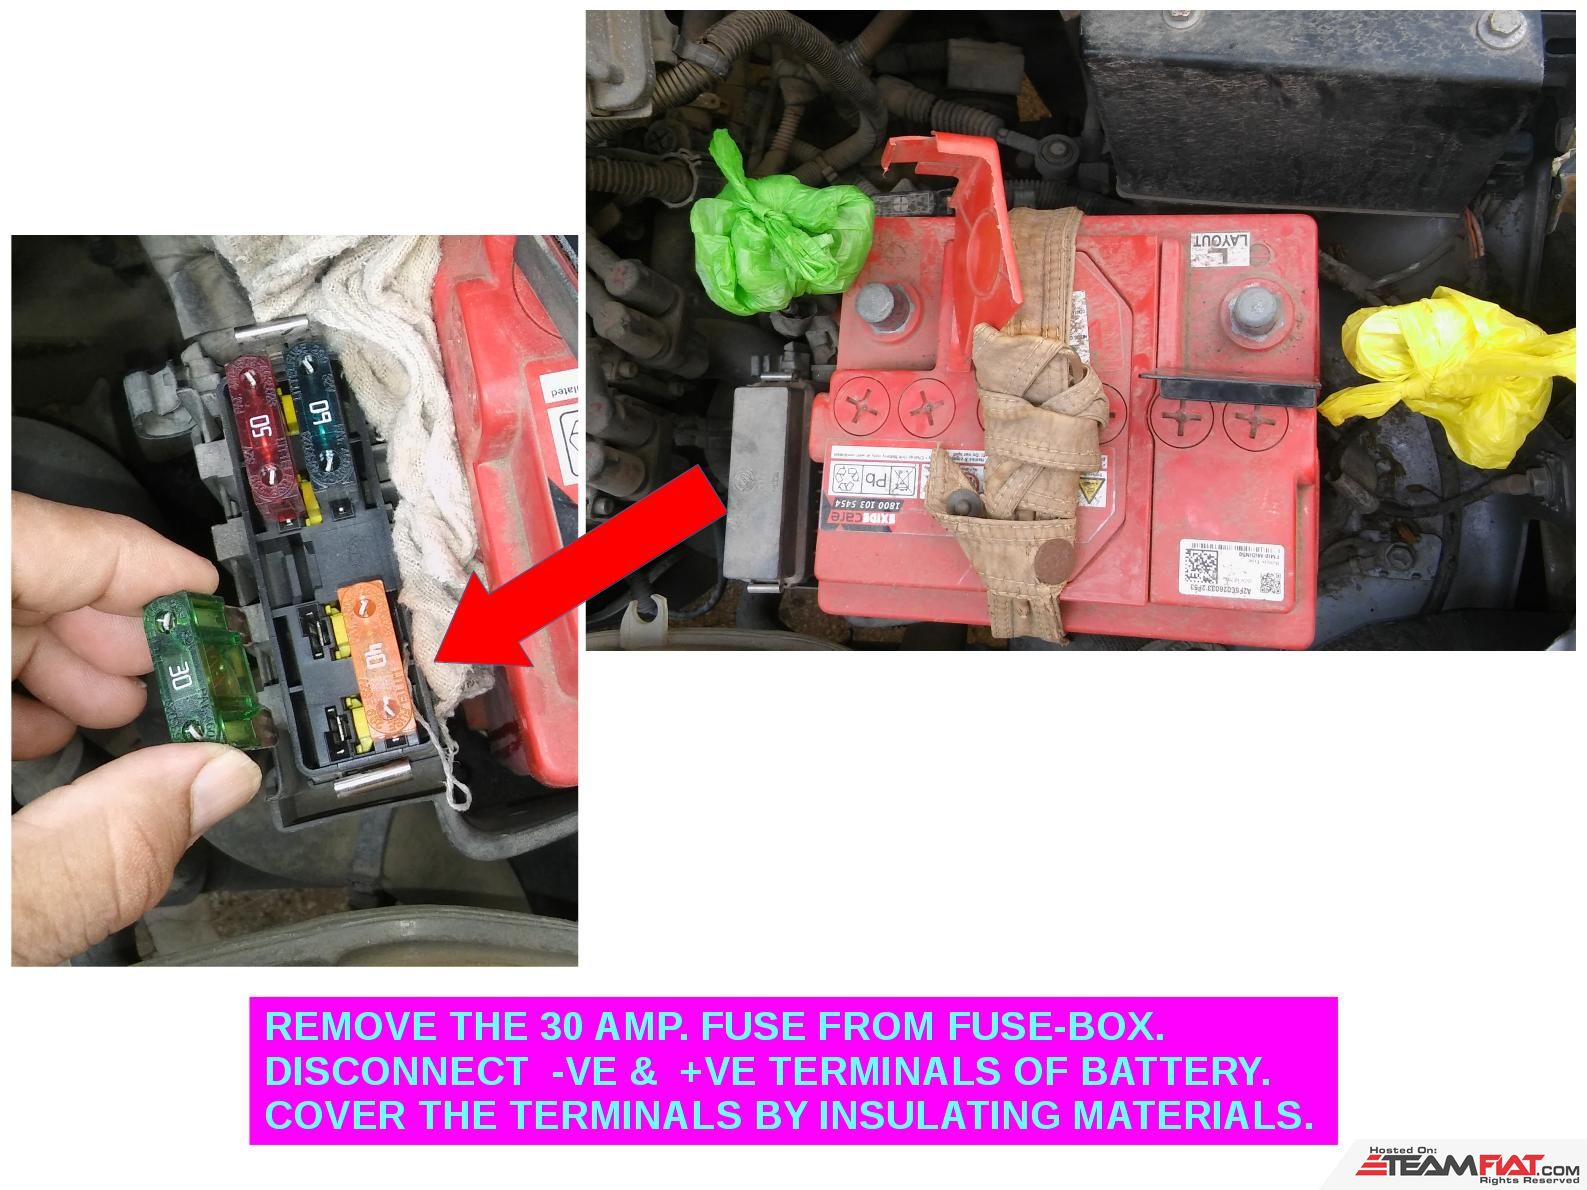 001-Fuse & Battery Terminals Detached.jpg